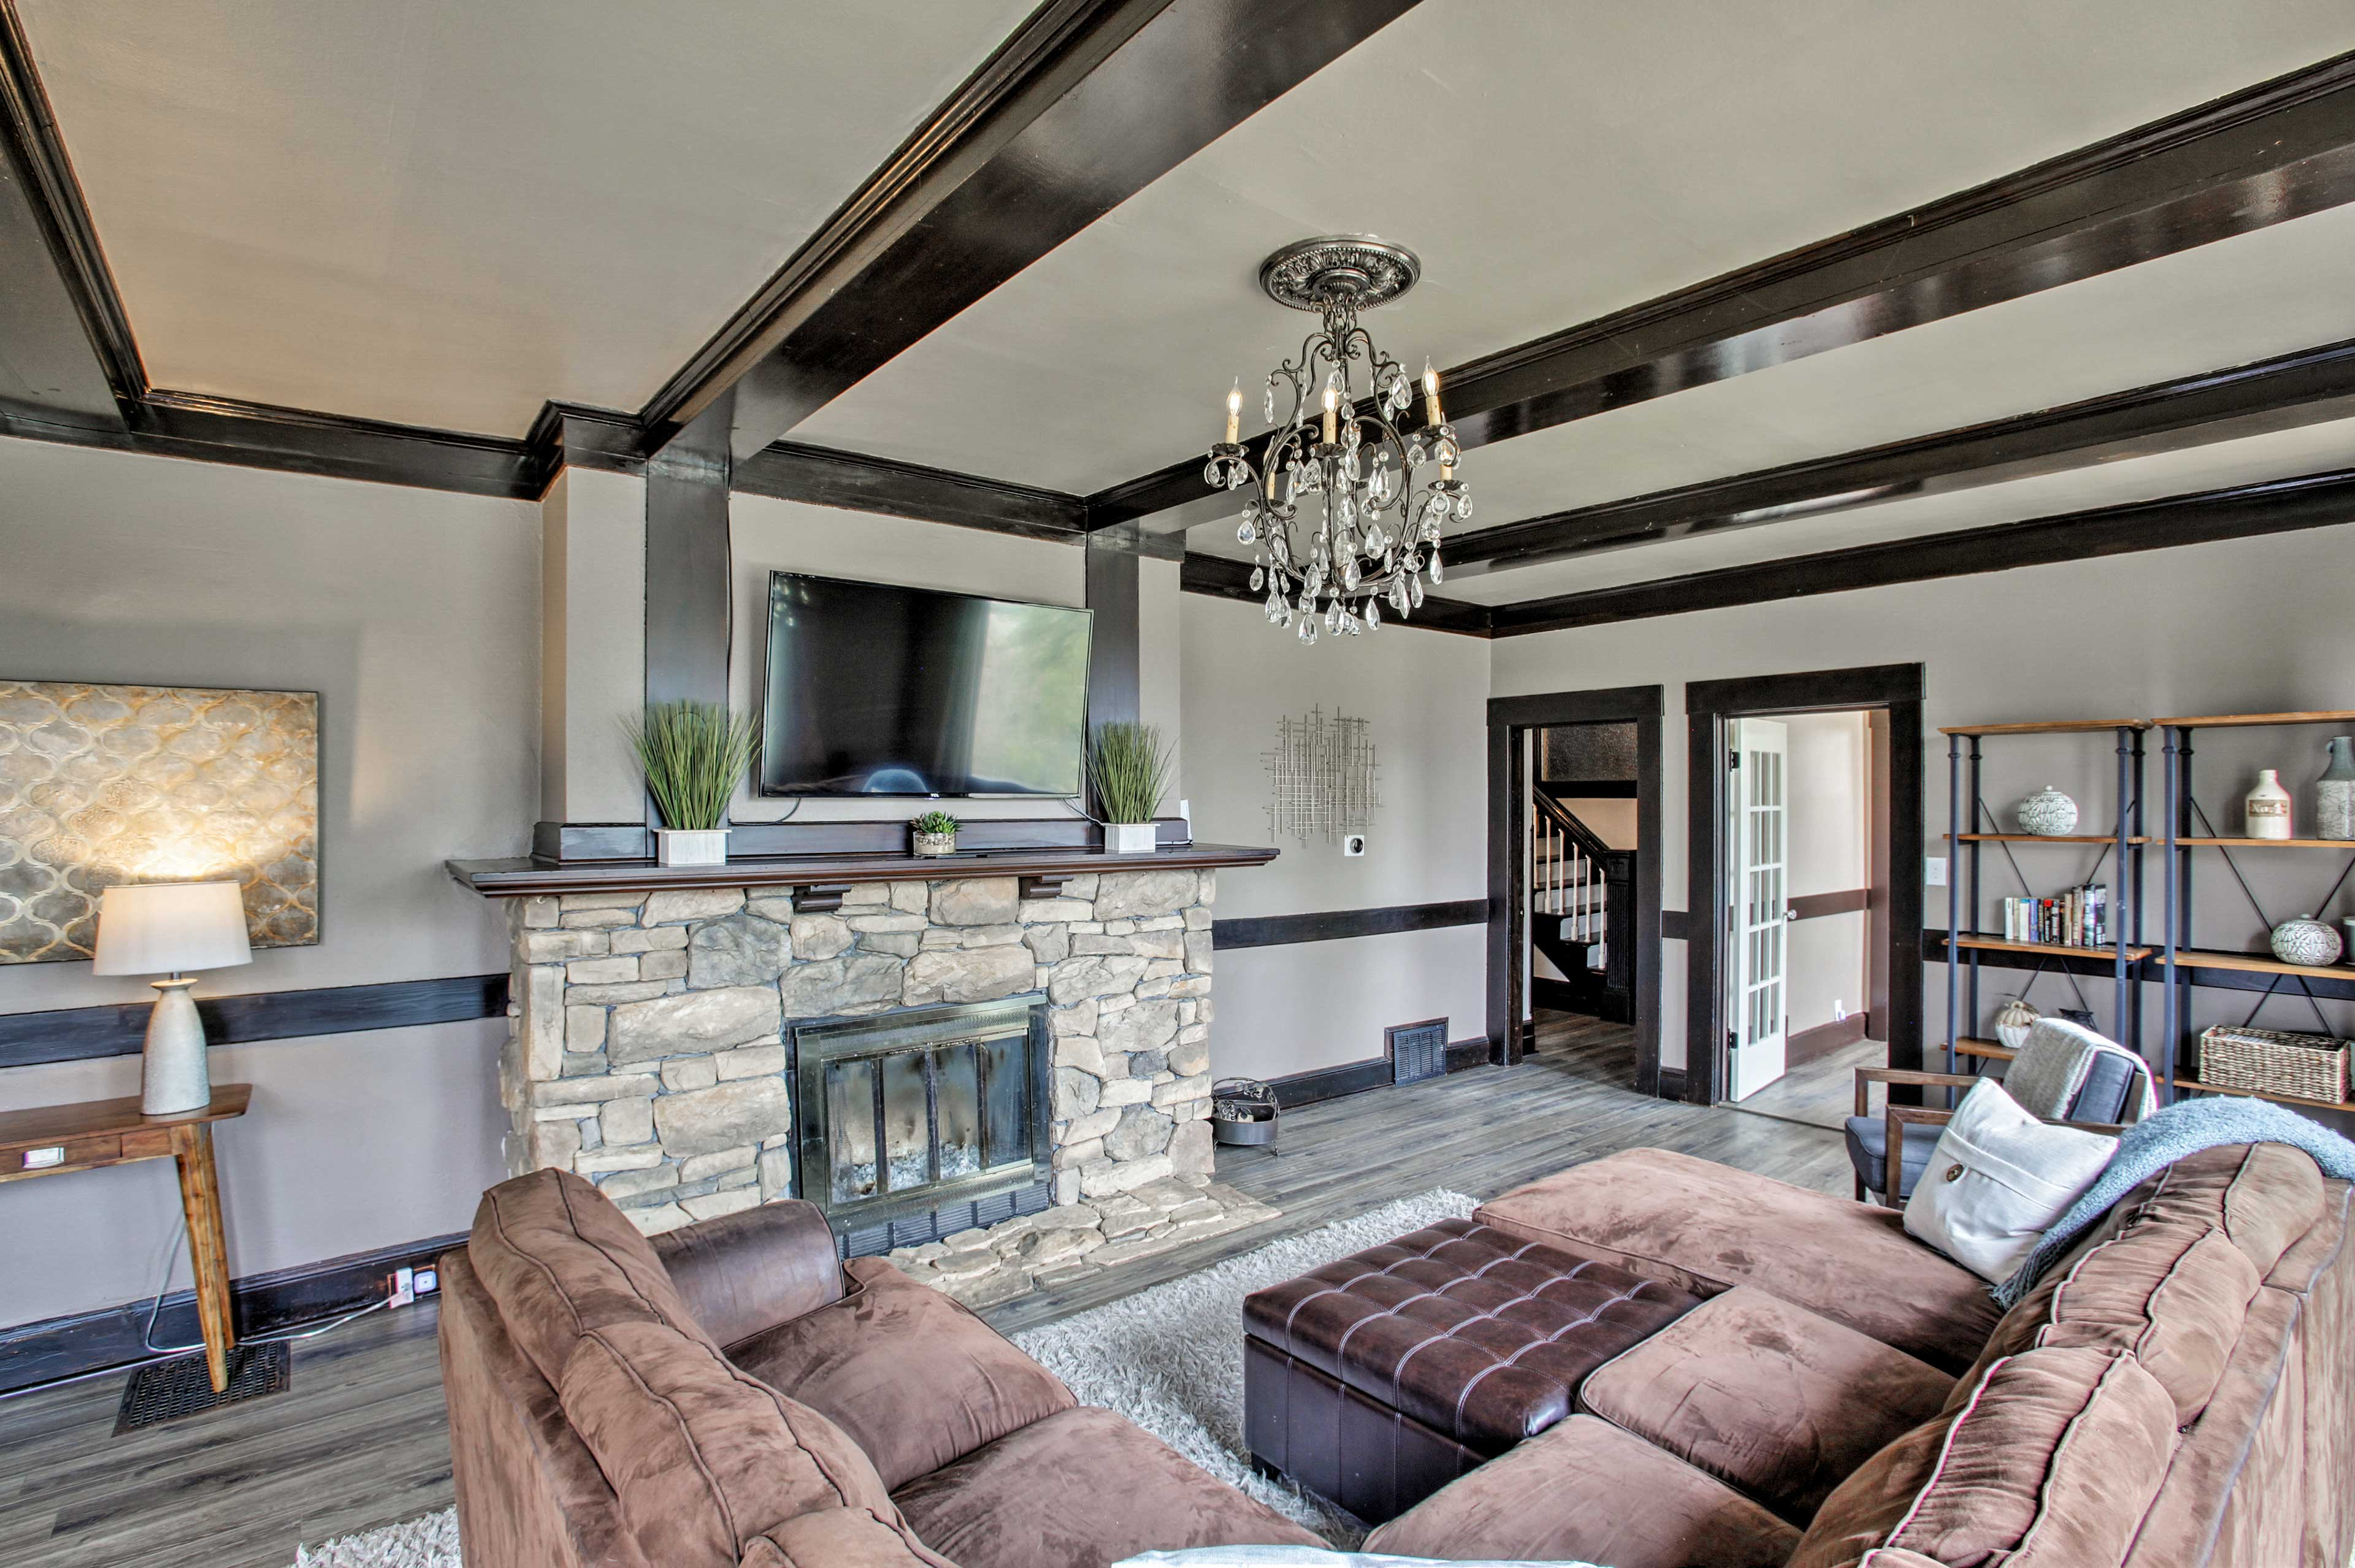 The interior is made up of over 2,600 square feet of living space.